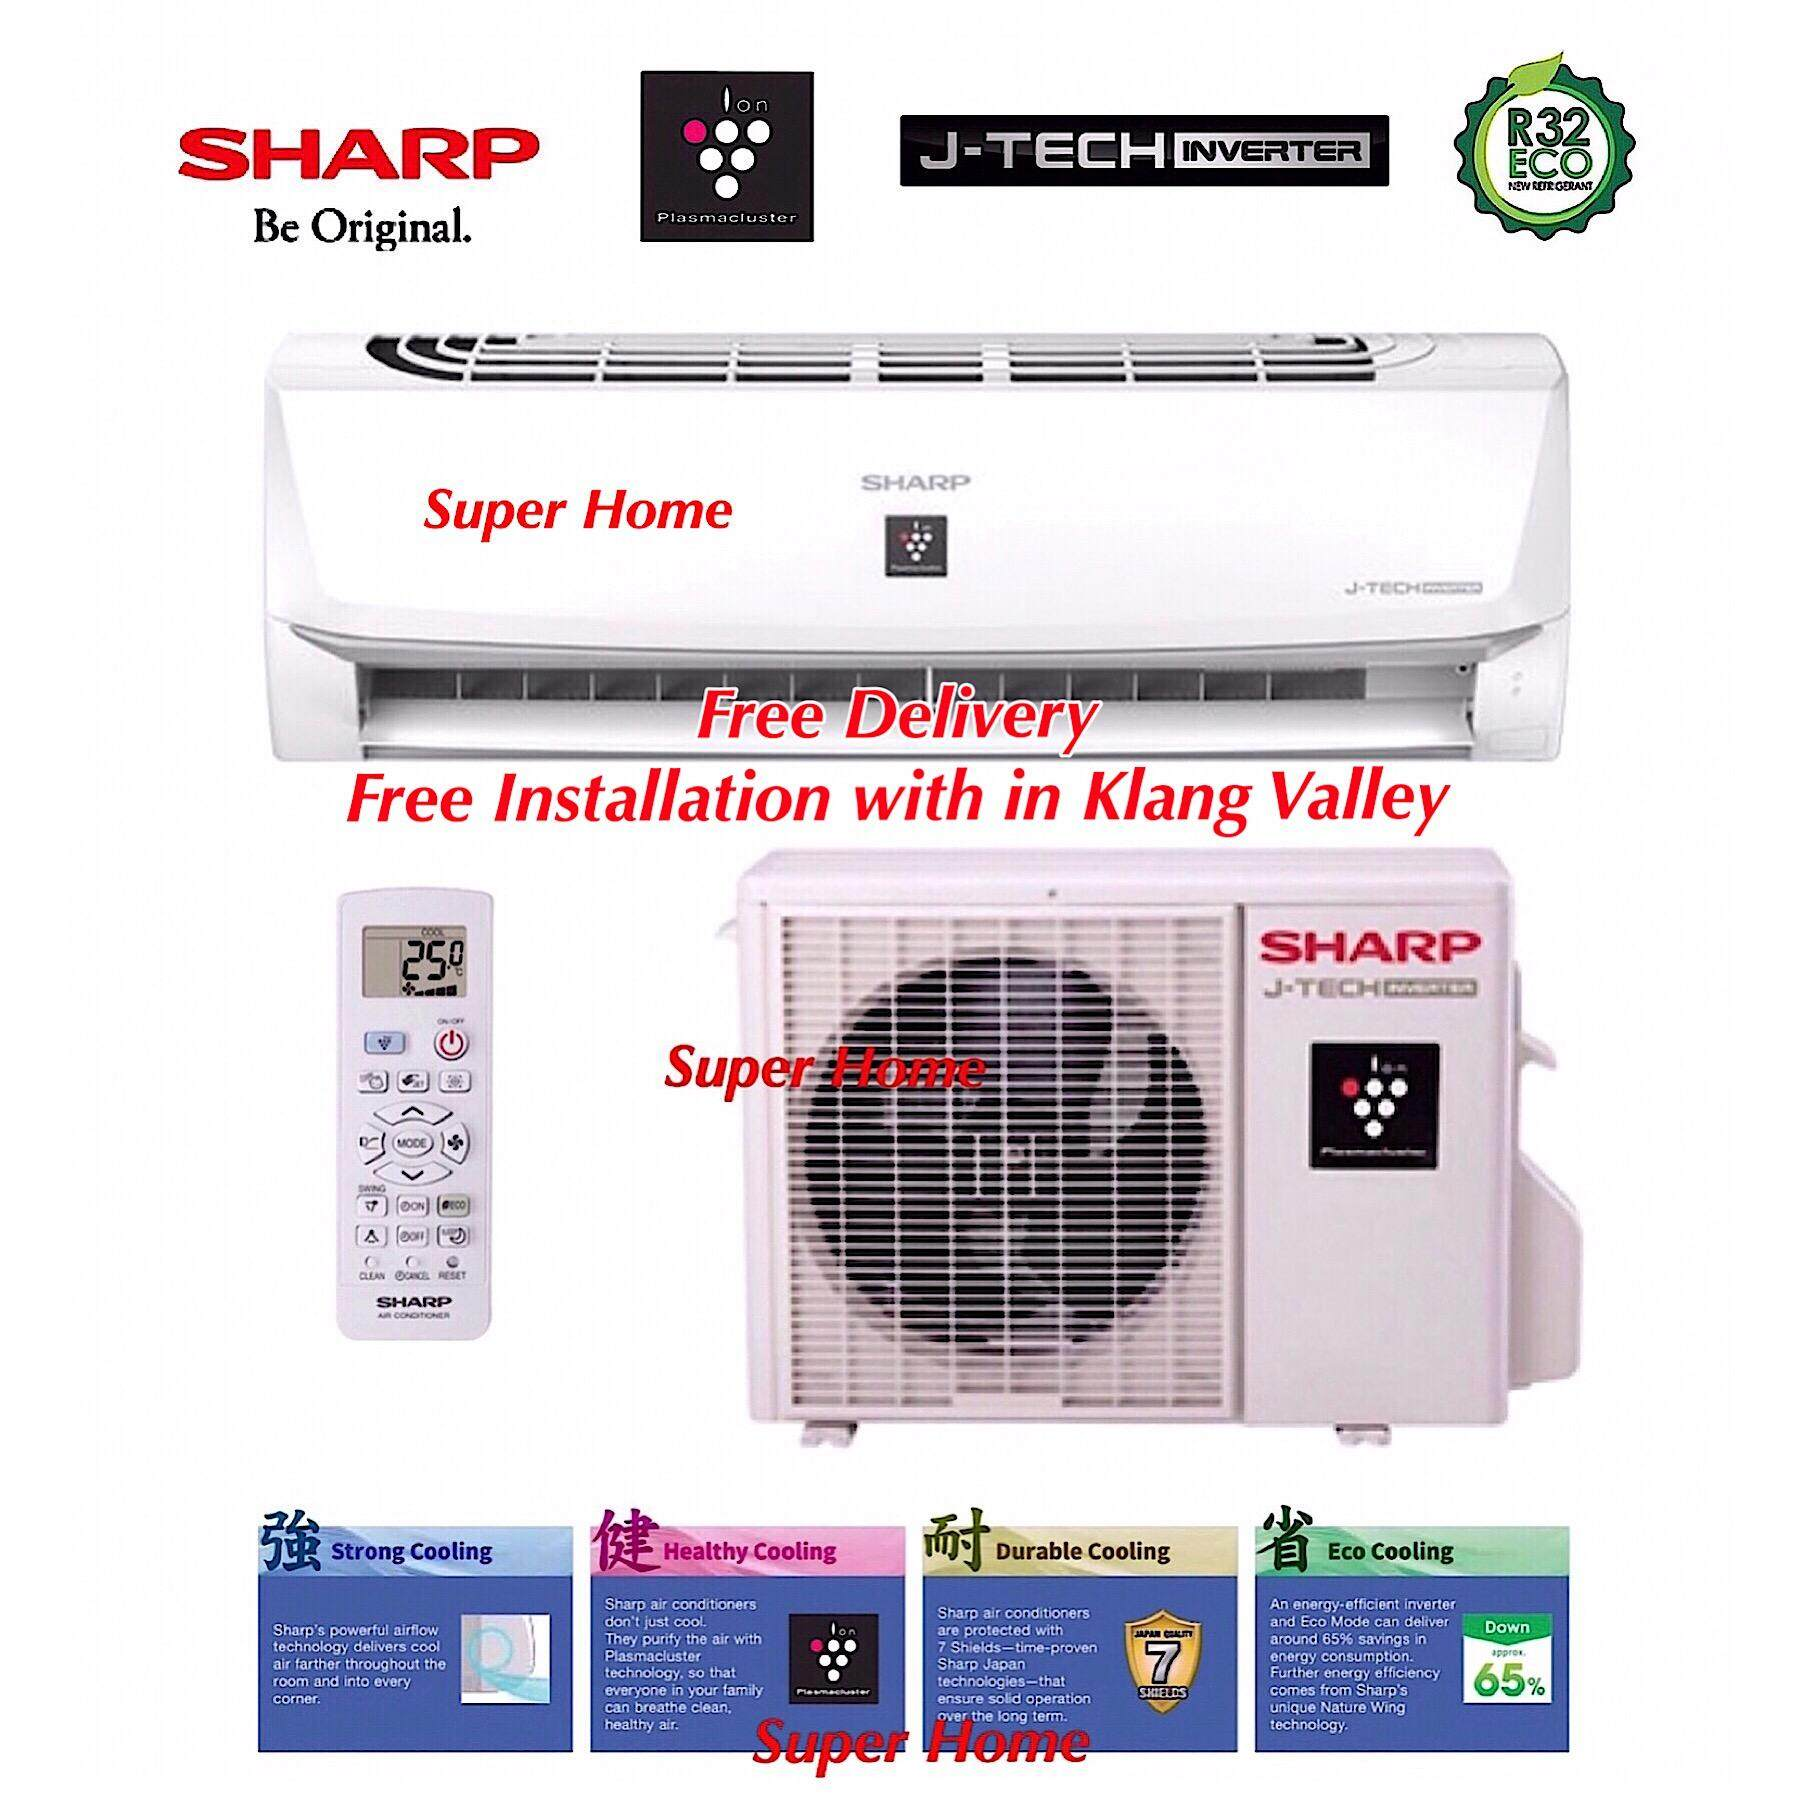 Sharp J-Tech Inverter Plasmacluster AHXP24WMD & AUX24WMD 2.5hp Split Air-Conditioner R32 + Free Delivery + Free Professional 2.5hp Aircond Installation Services (Only with in Klang Valley)